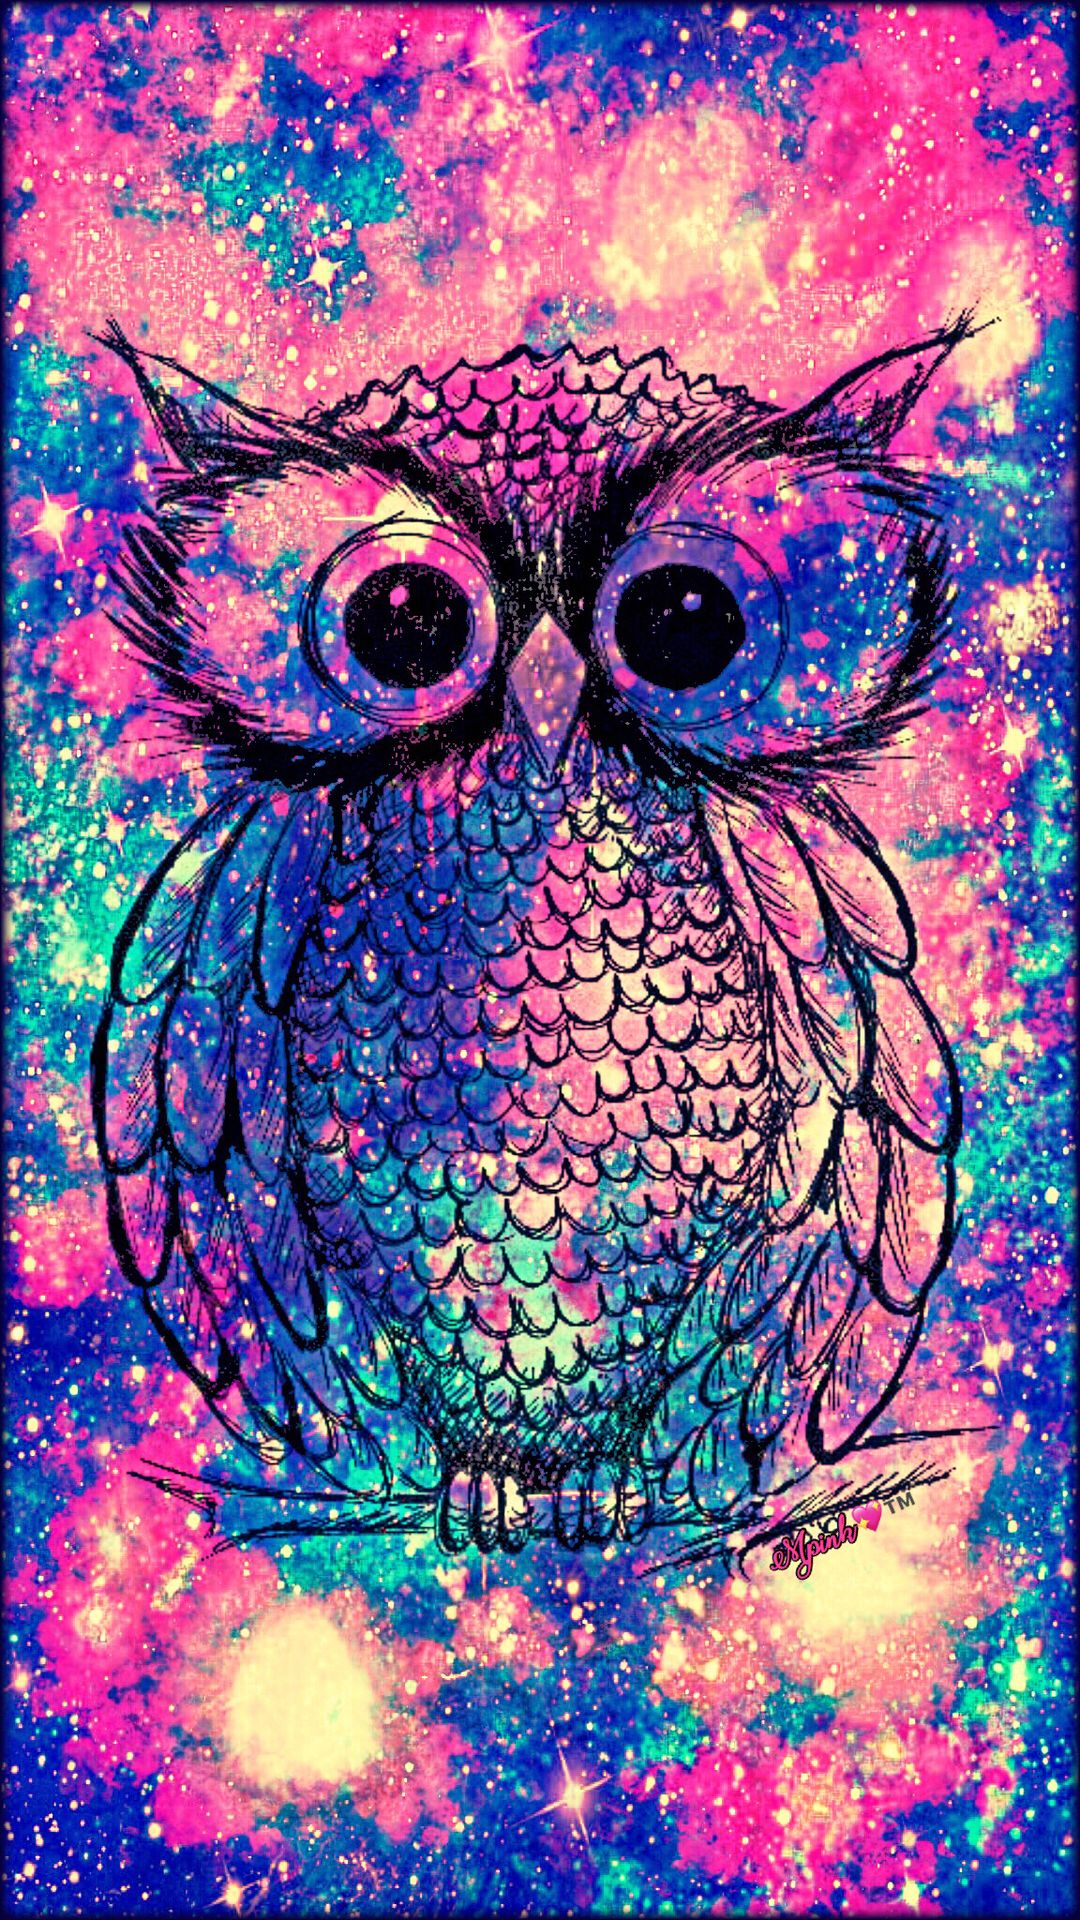 Vintage Owl Galaxy Wallpaper Androidwallpaper Iphonewallpaper Wallpaper Galaxy Sparkle Glitter Lockscreen Pretty Pink Cute Animal Girly Owl